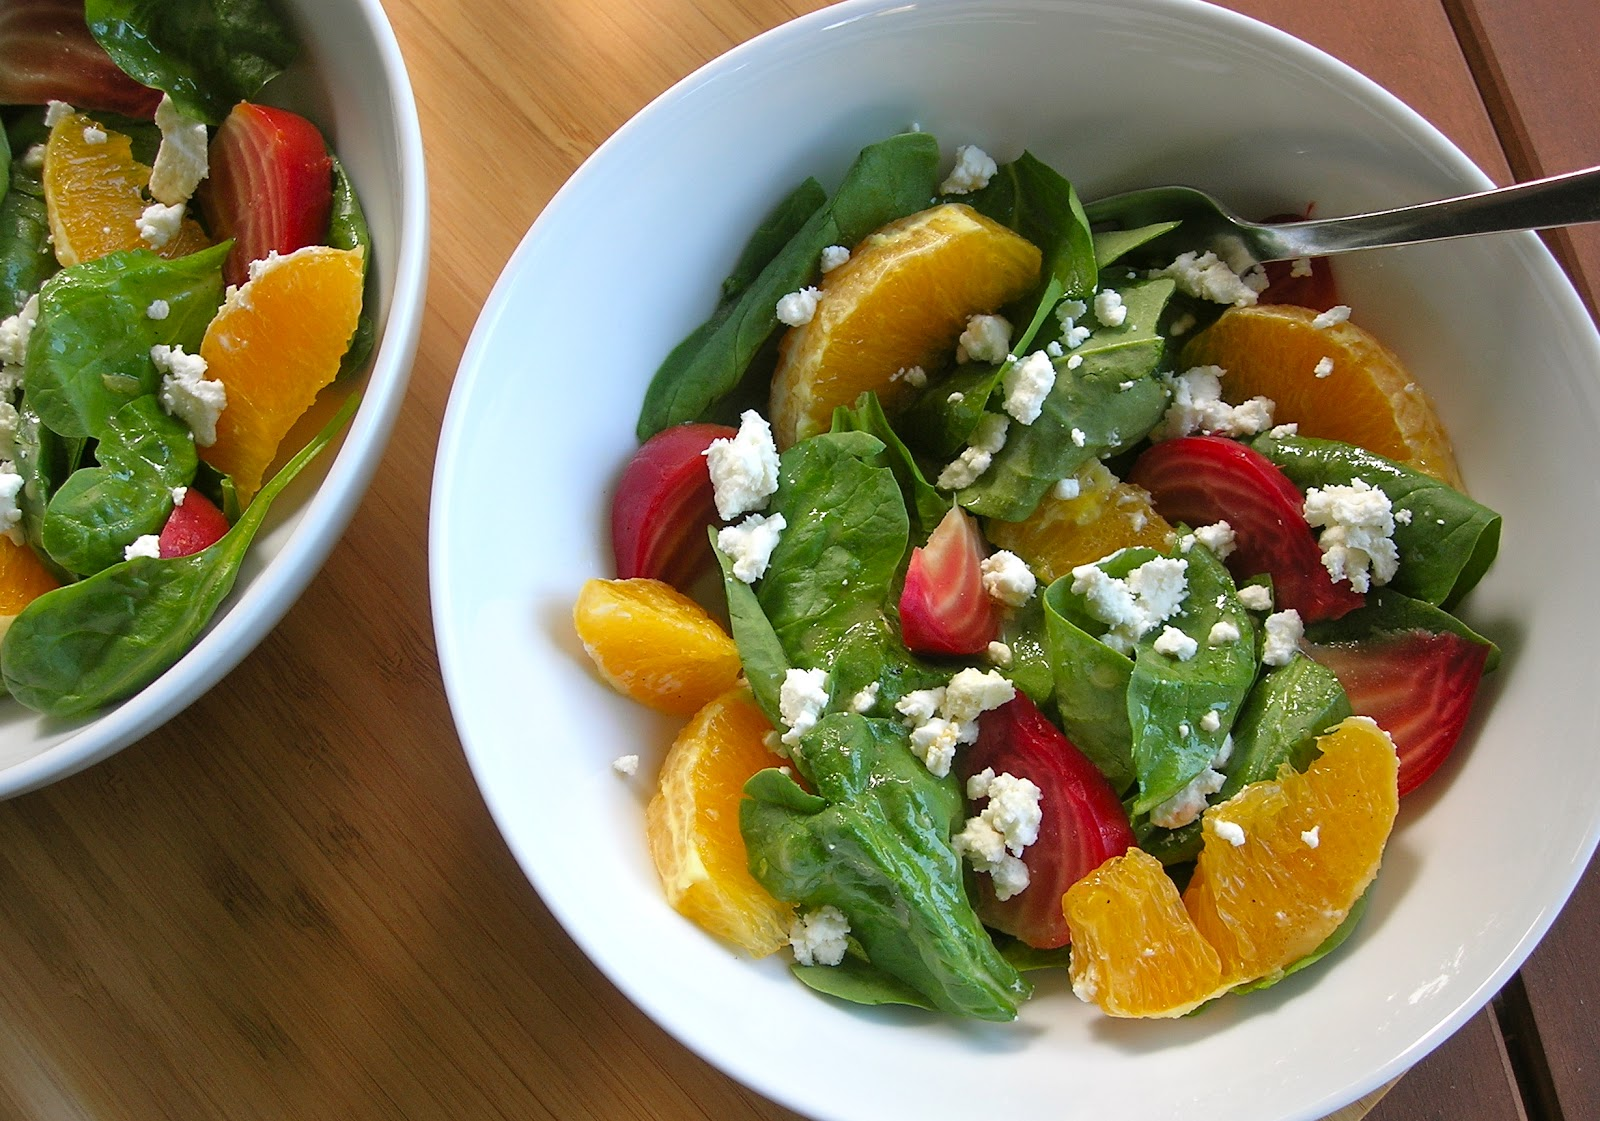 ... Bungalow: Spinach, Orange and Roasted Beet Salad with Goat Cheese